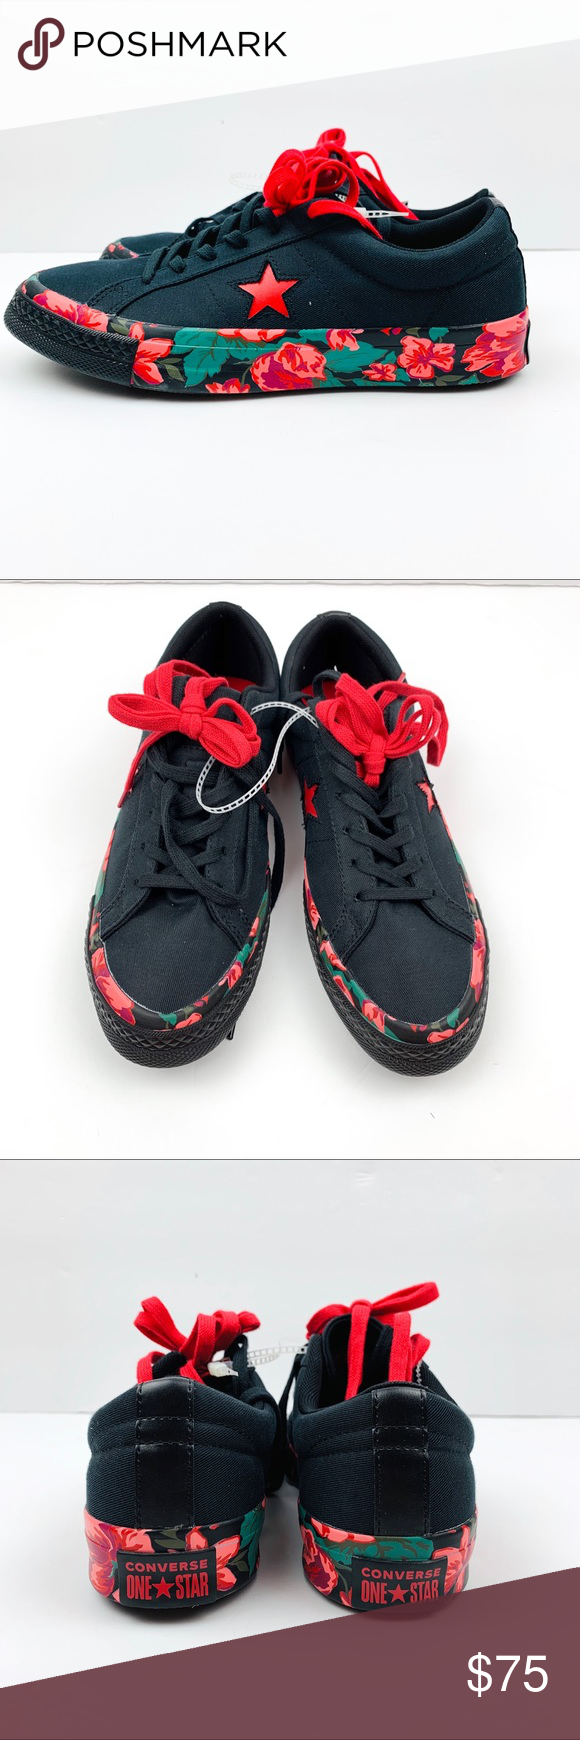 Converse One Star Floral Ox black res